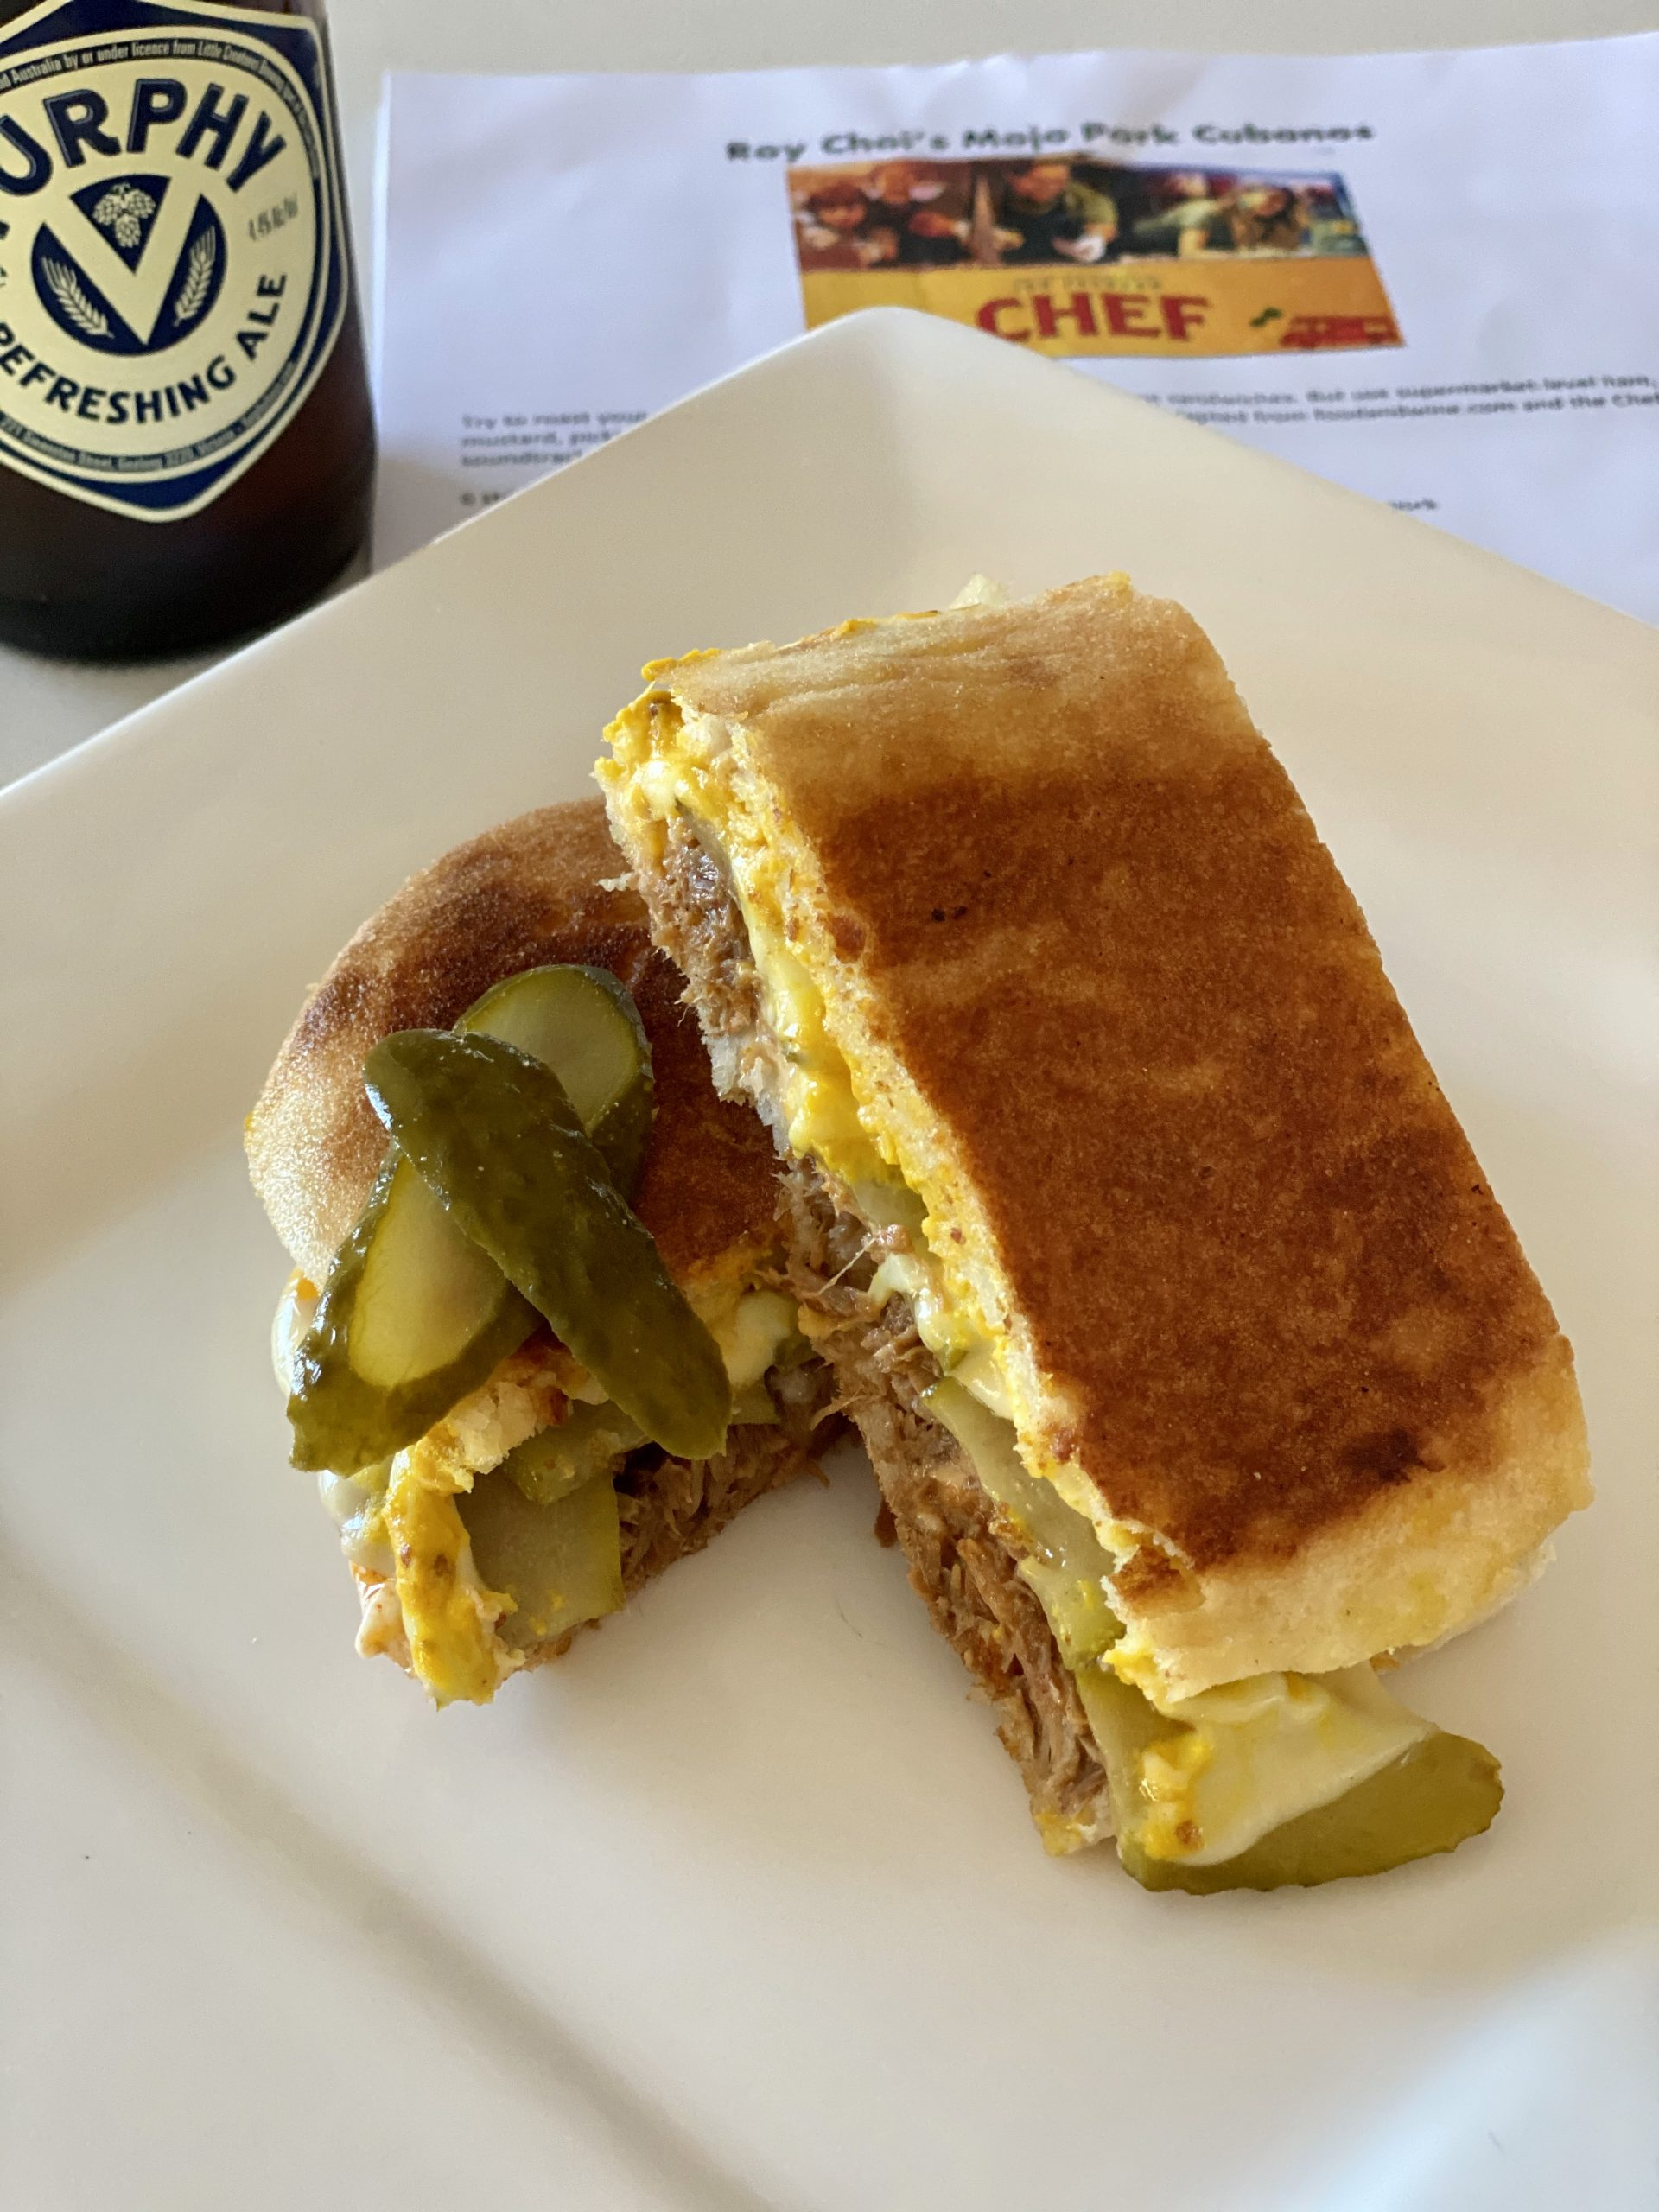 Cubano from Chef with Jon Favreau  - Giddy Guest